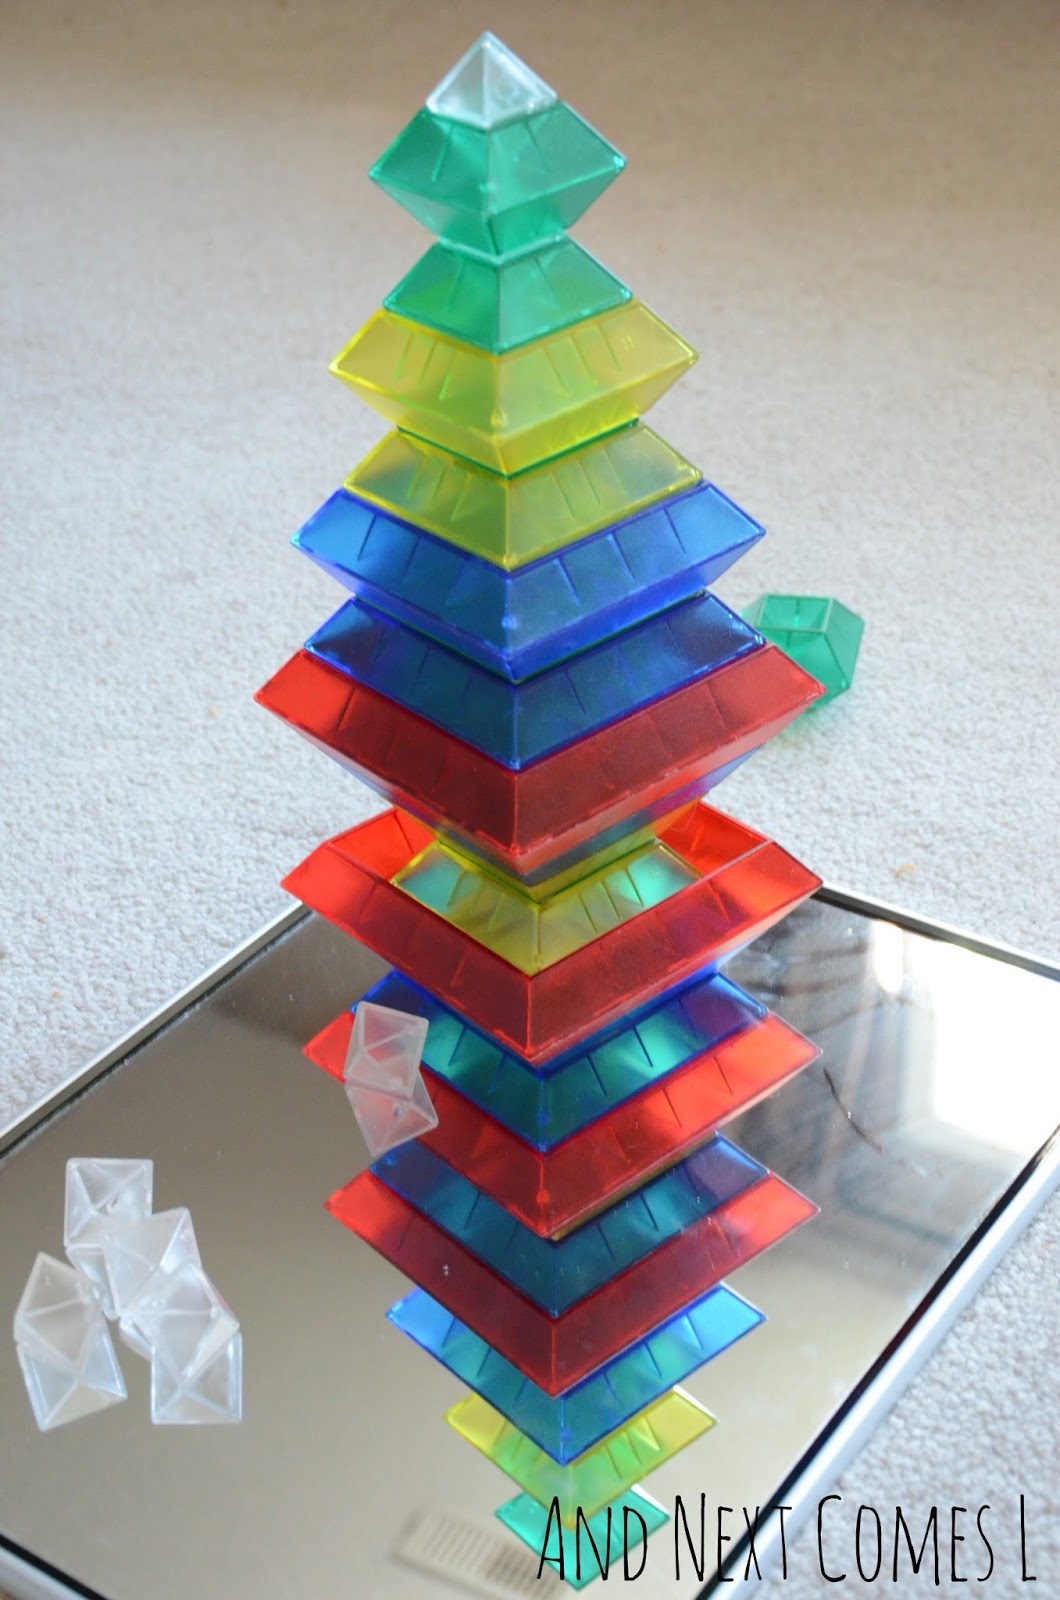 A tower of translucent WEDGiTS on a mirror from And Next Comes L